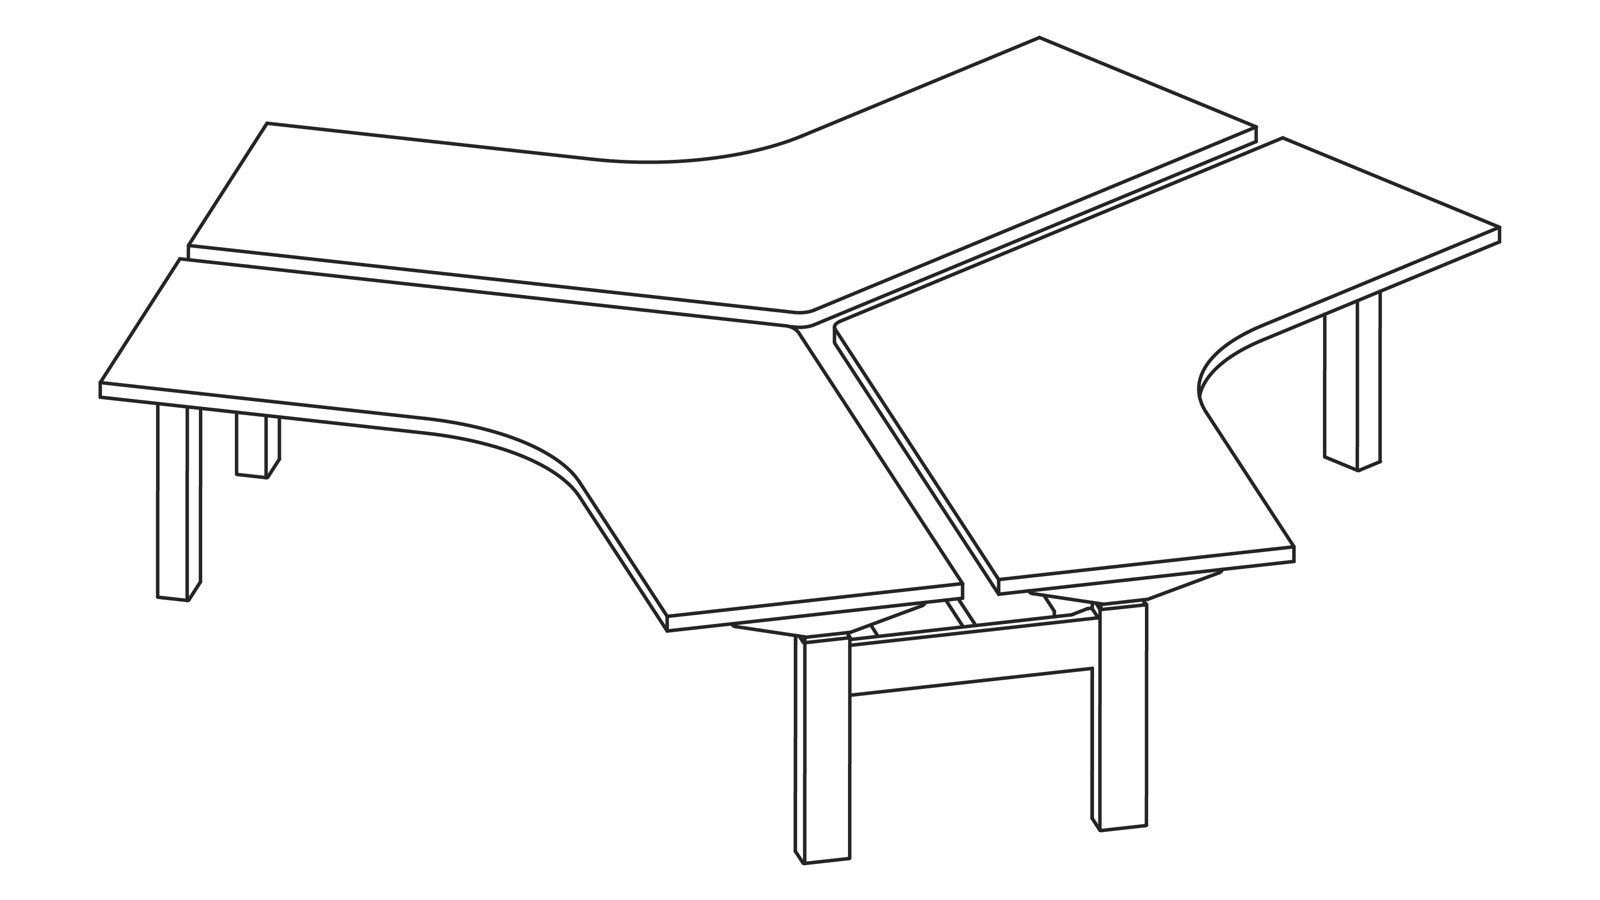 A line drawing of a Nevi Link standing desk system with three 120-degree work surfaces. All desks are at sitting height.